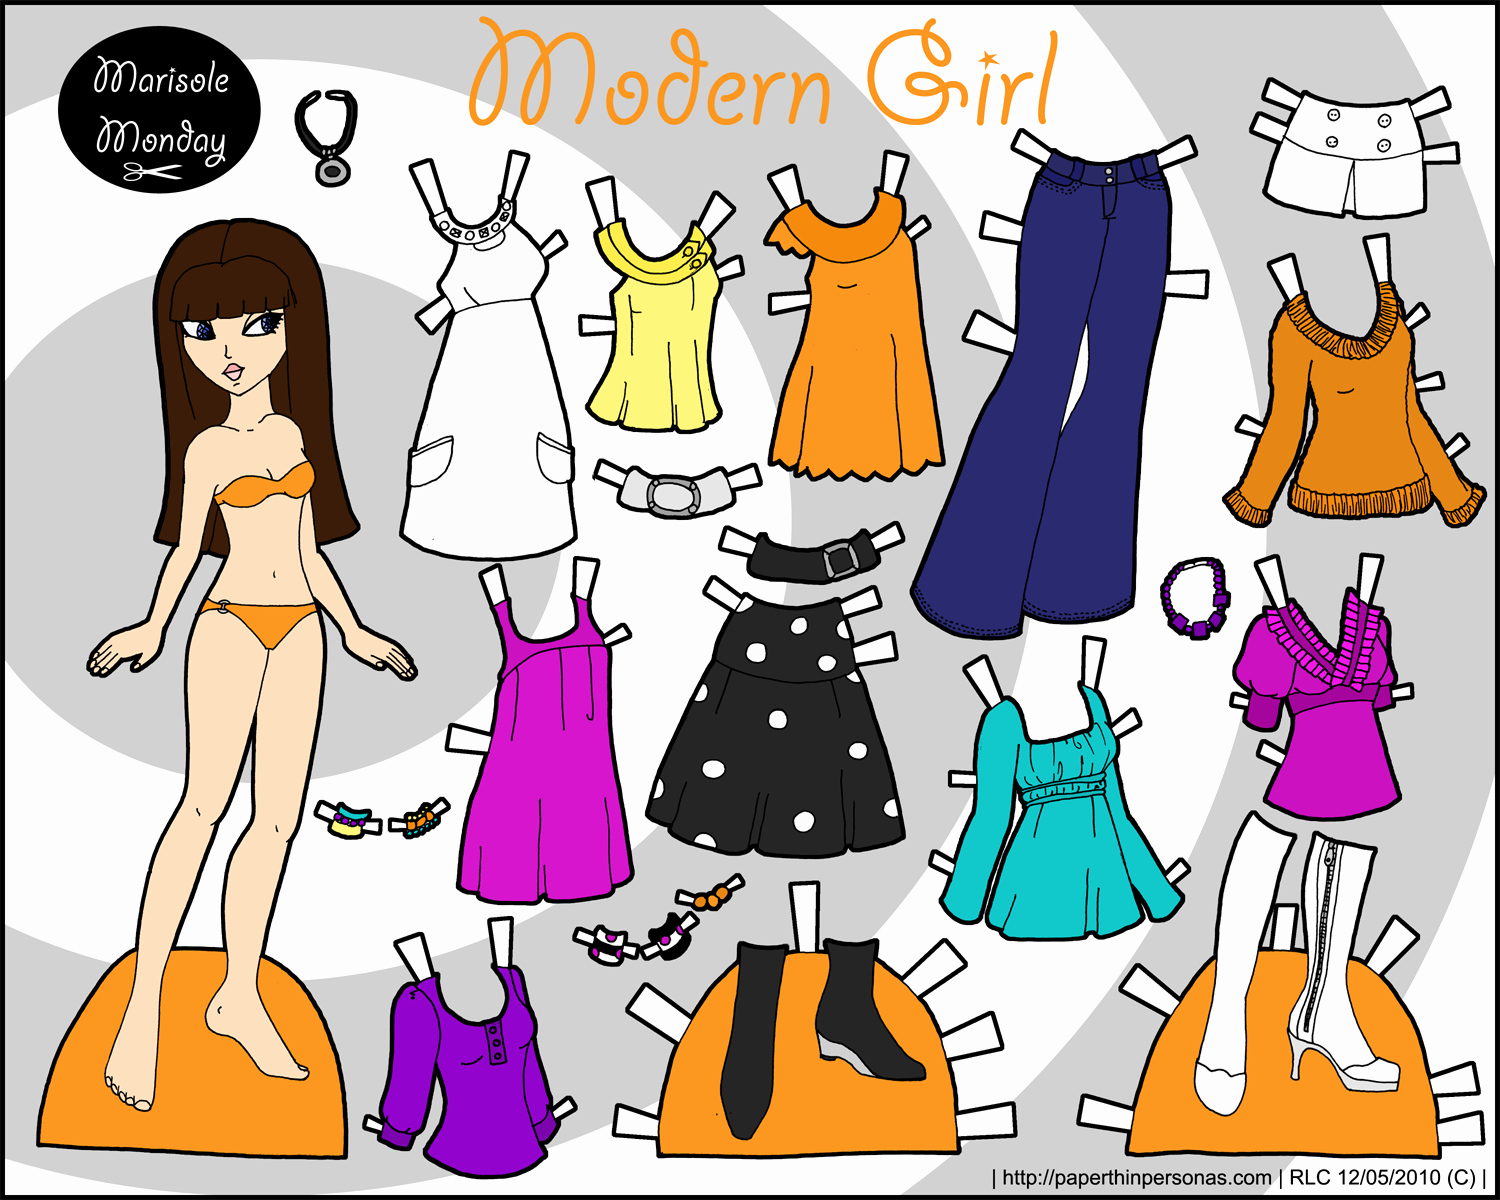 Printable Paper Doll Templates Fresh Marisole Monday Modern Girl